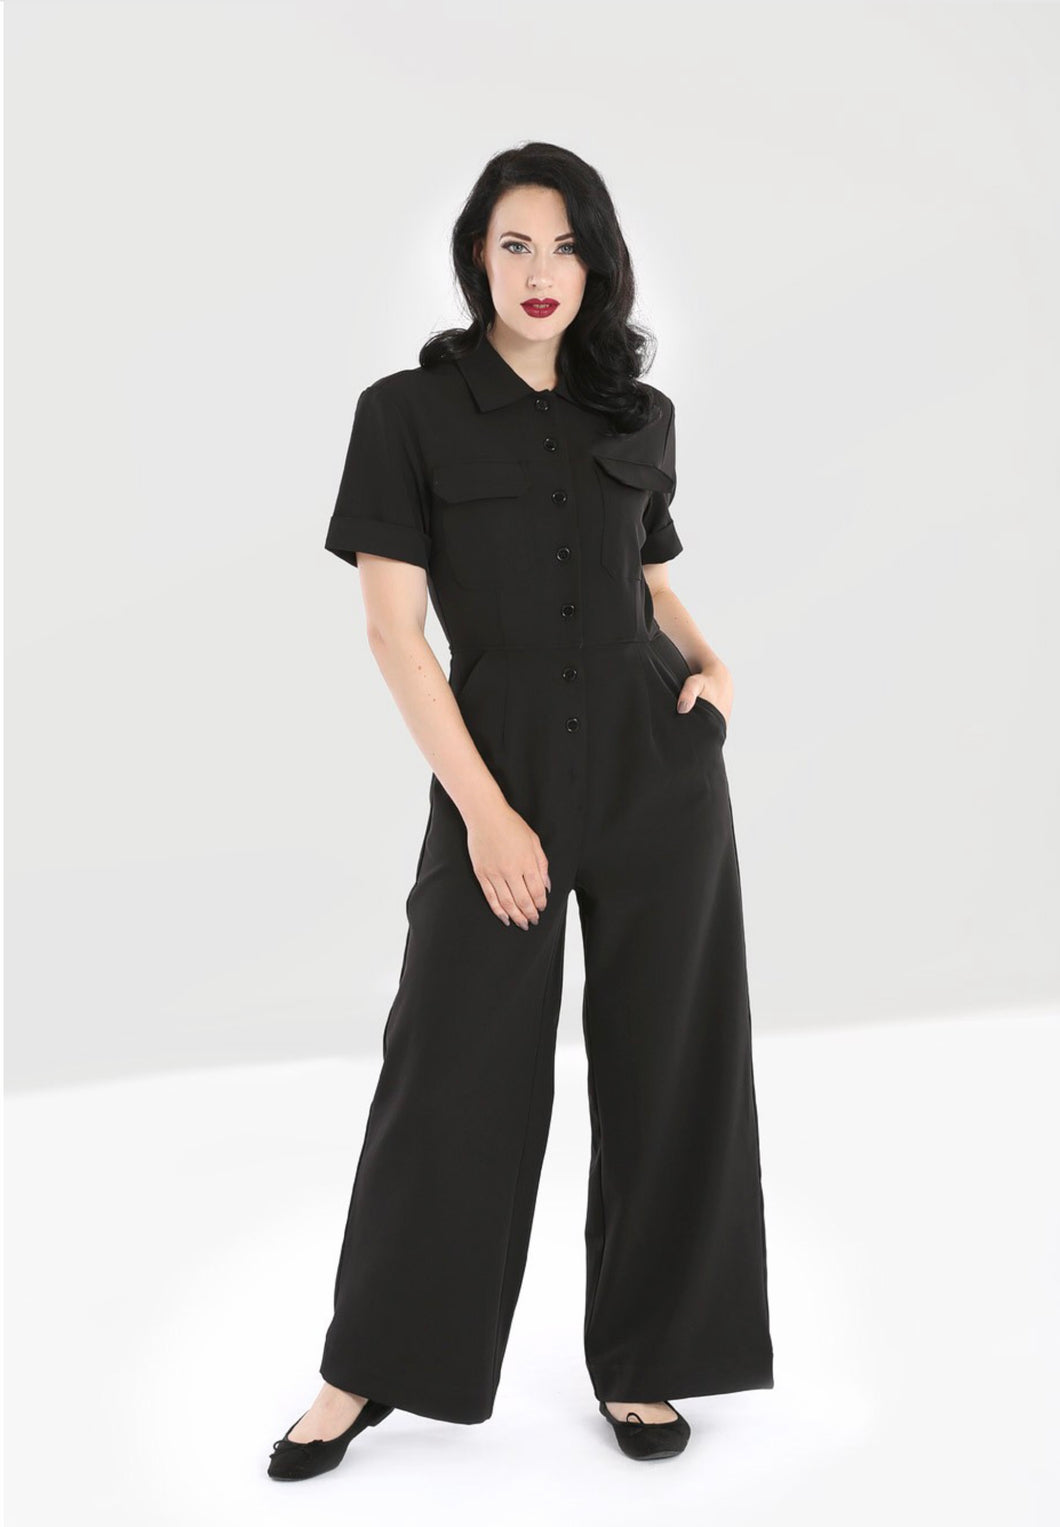 Abyss Boiler Suit - Isabel's Retro & Vintage Clothing